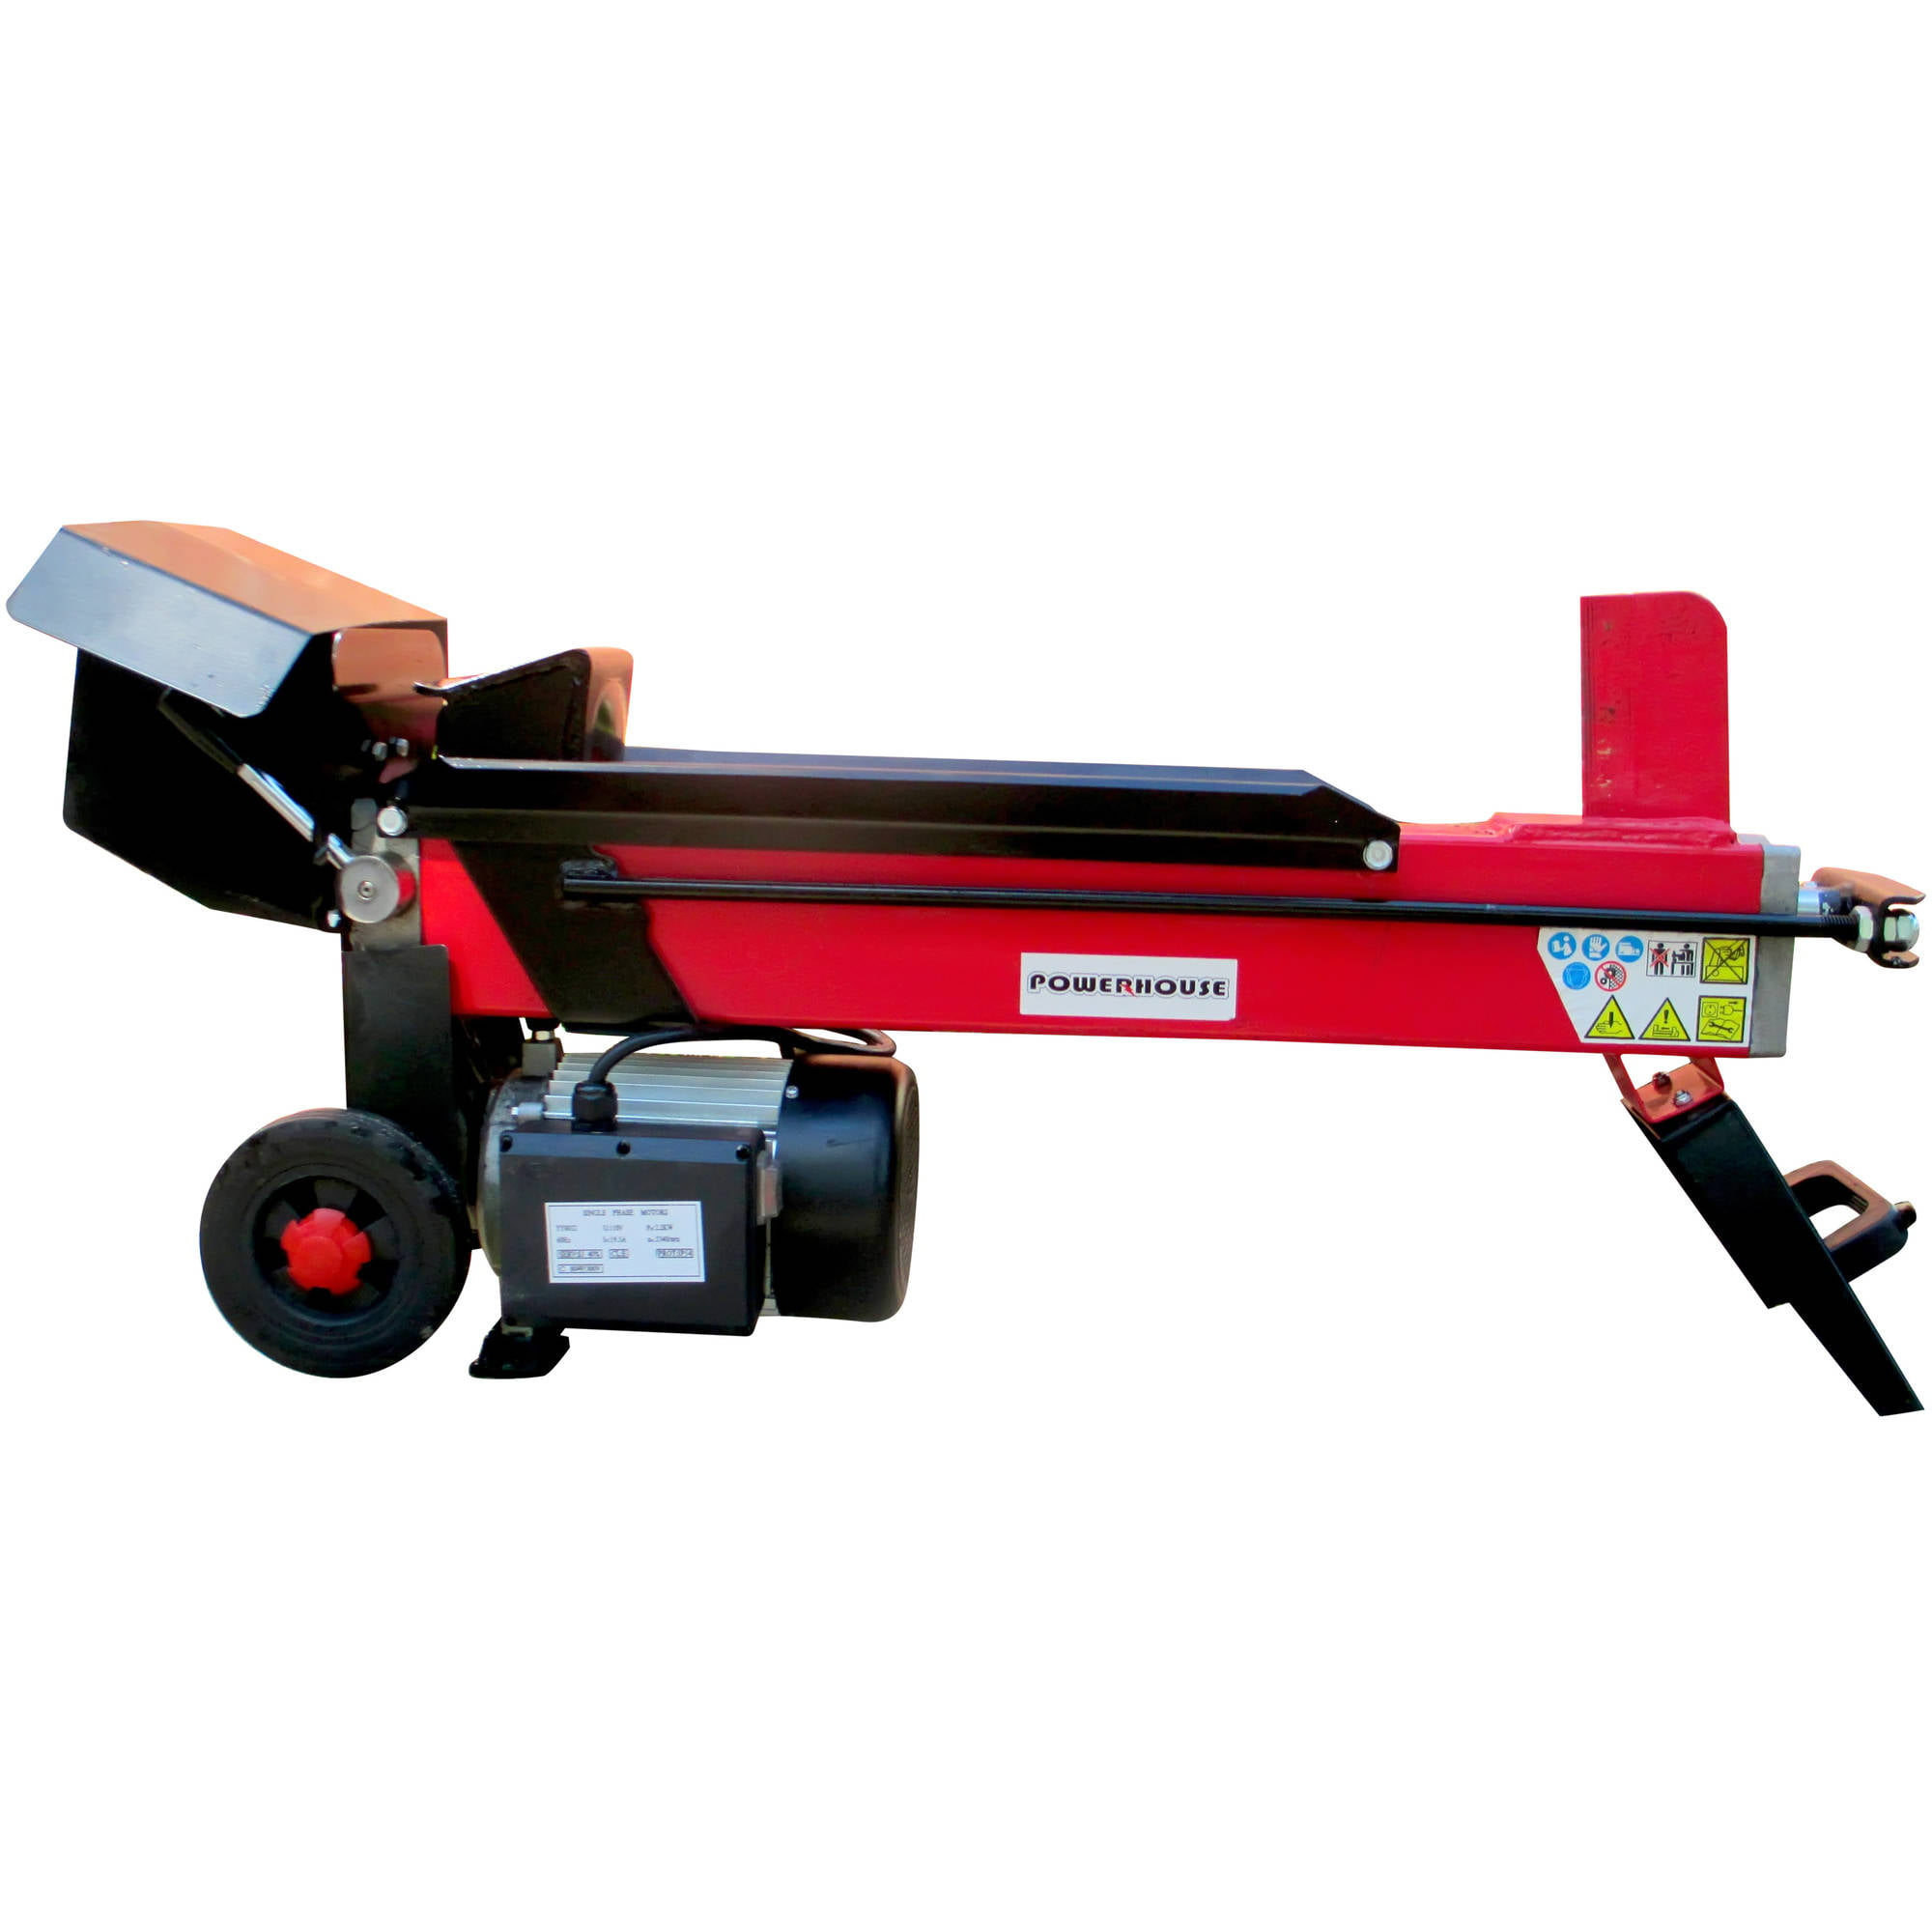 Powerhouse 7-Ton Electric Hydraulic Log Splitter by Generic